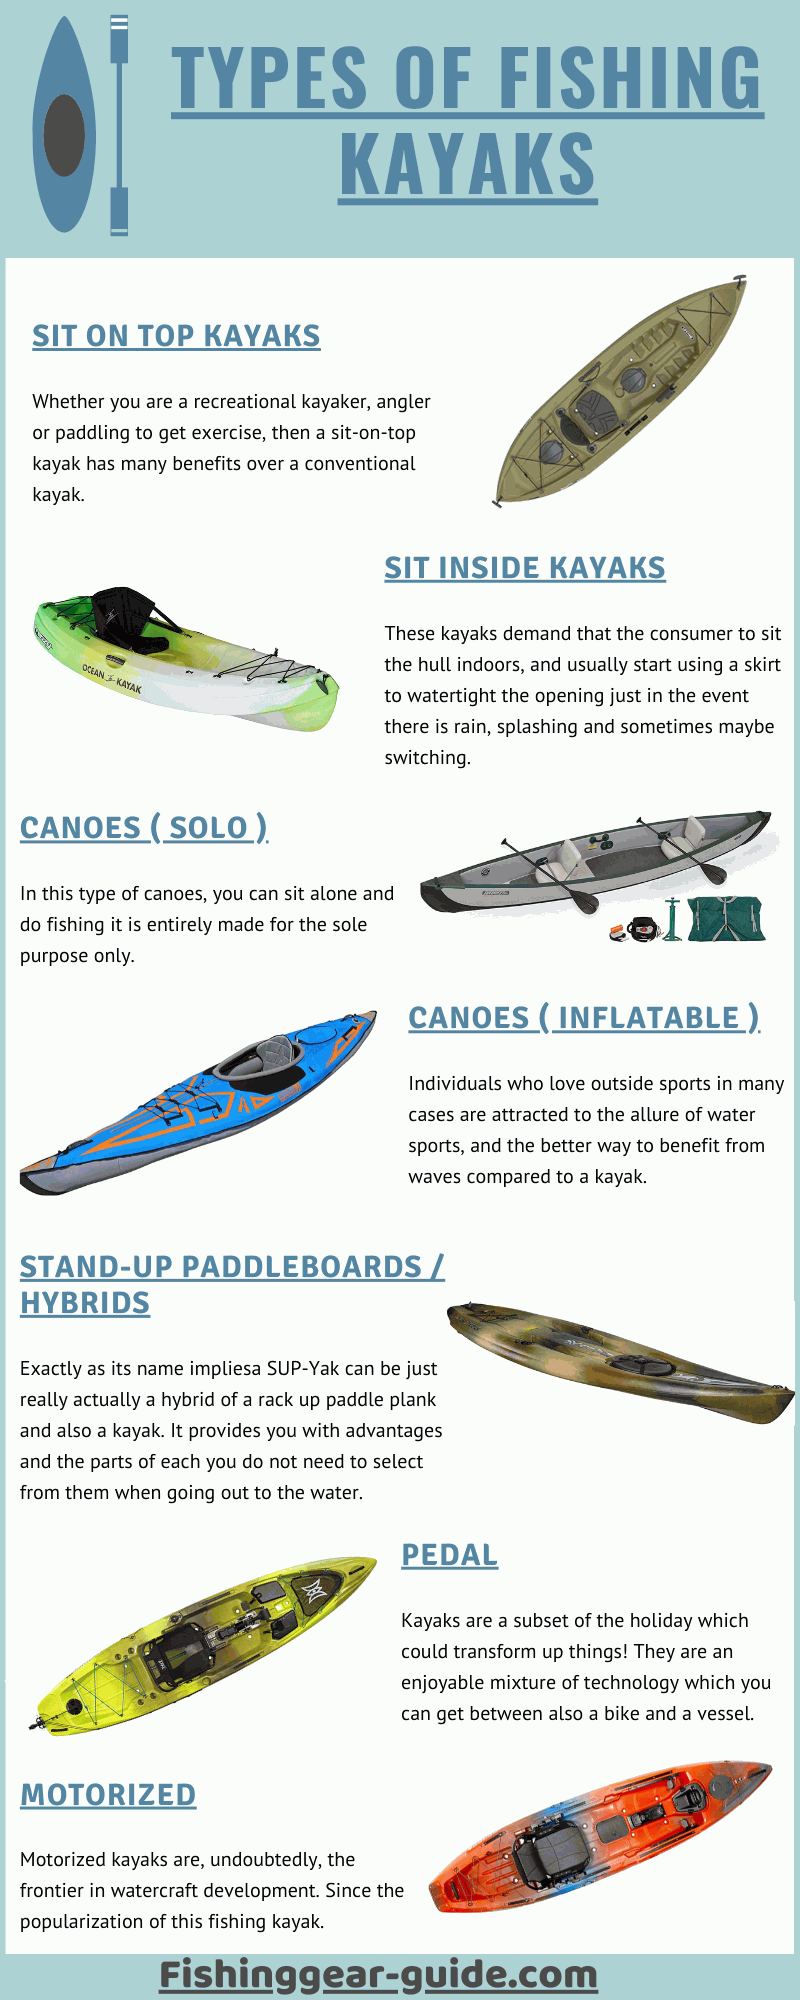 Types of fishing kayaks